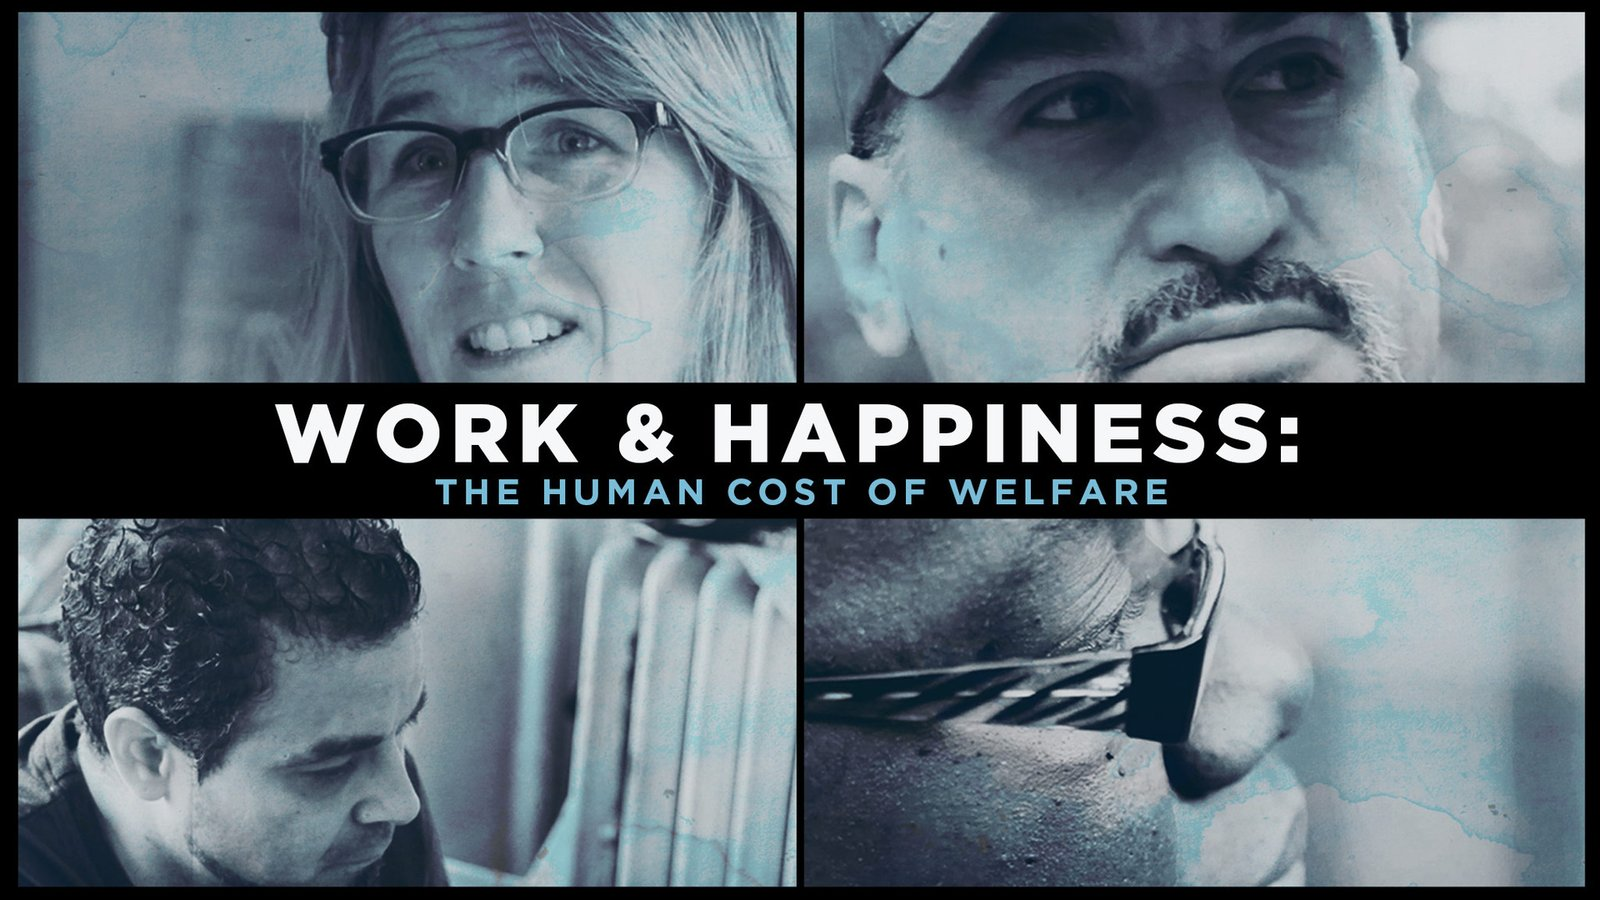 Work & Happiness: The Human Cost of Welfare